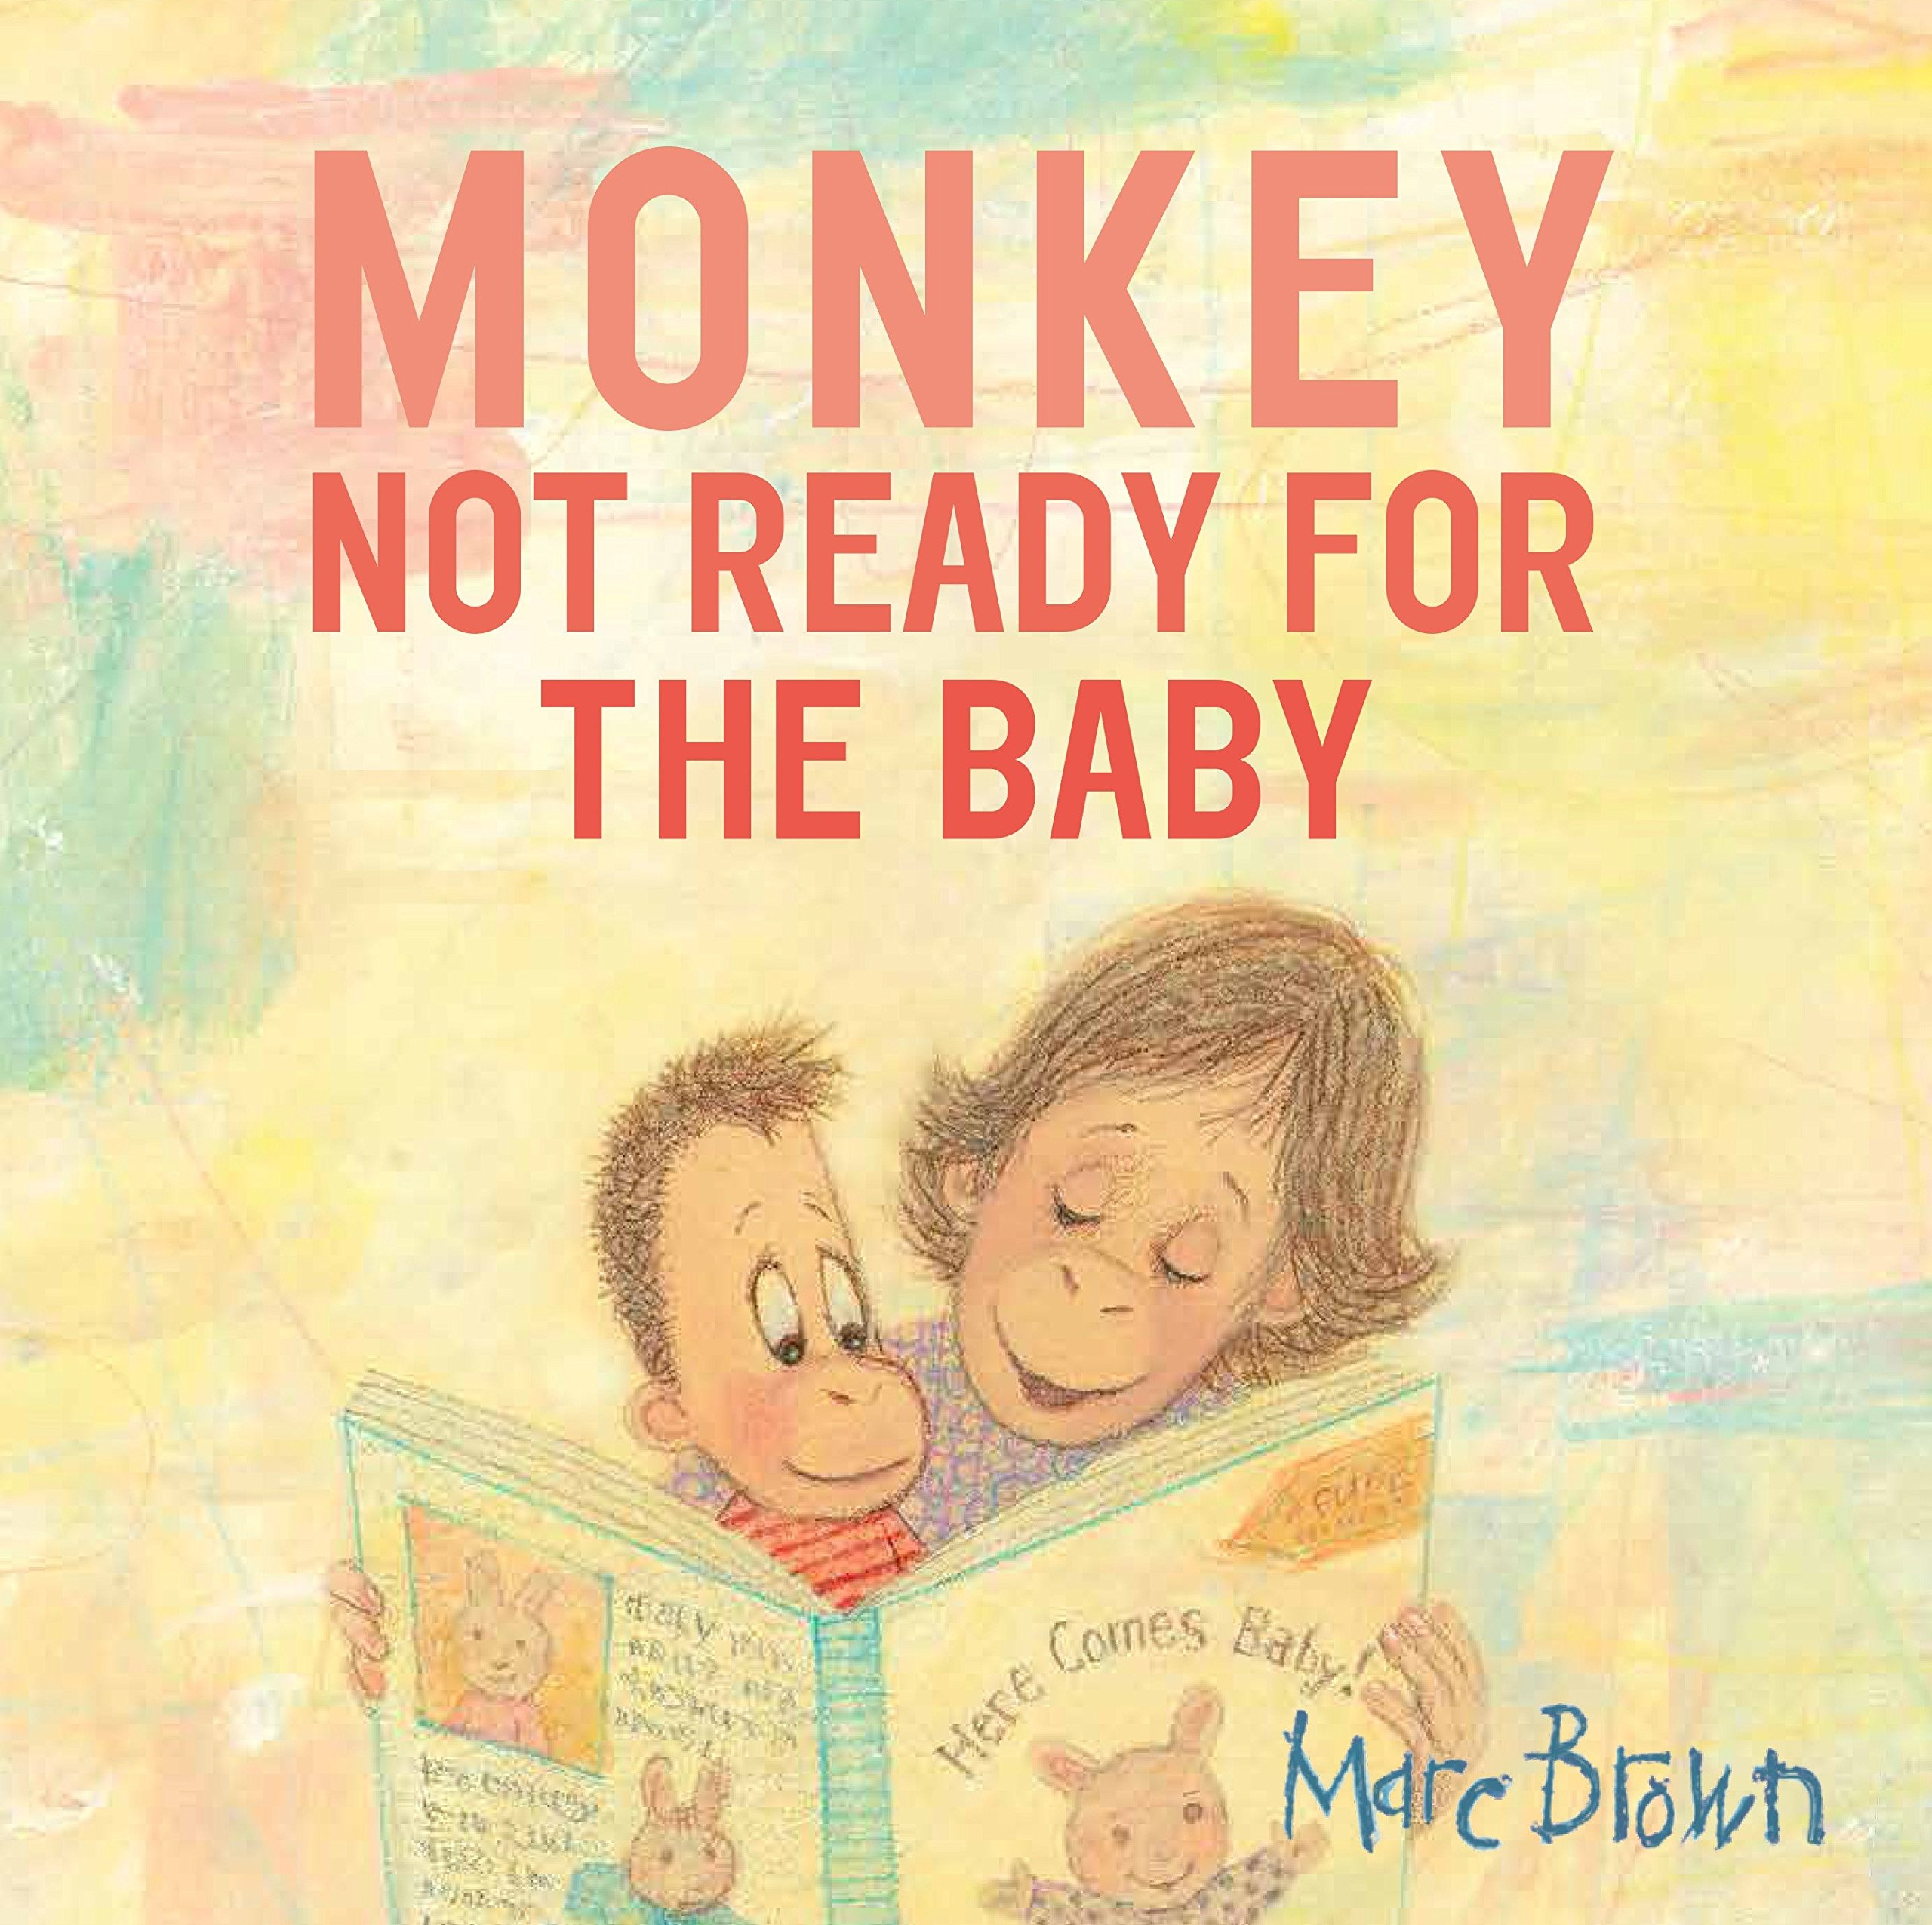 Monkey: Not Ready for the Baby